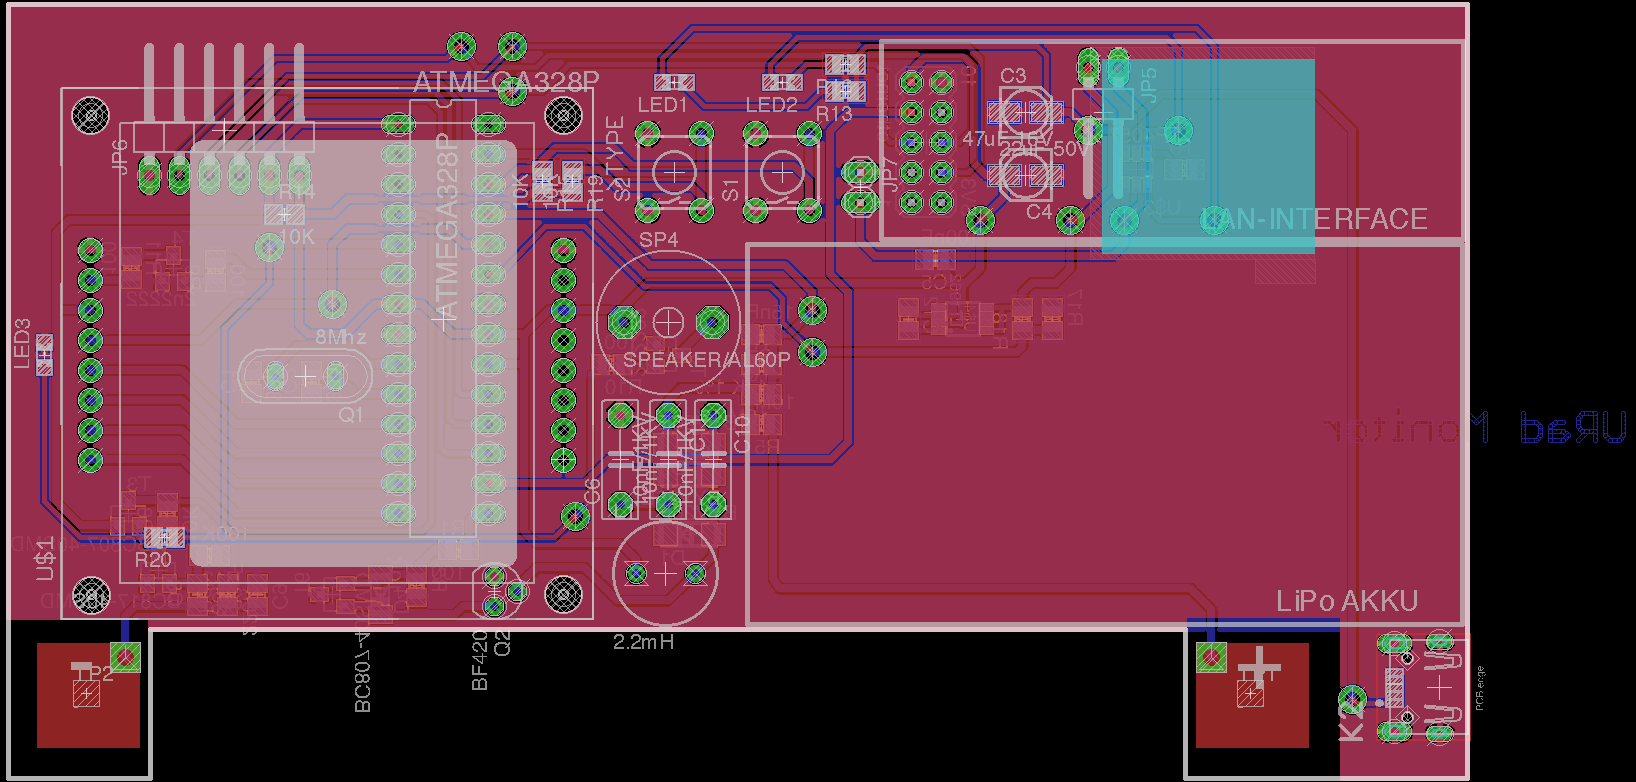 Open Source Iot Platform Geiger Counter Schematic Forums Projects Diy Chris And Frederik Built A Smd Variant With Lipo Adapter To Make The Kit1 Fully Portable They Also Did 3d Printable Enclosure